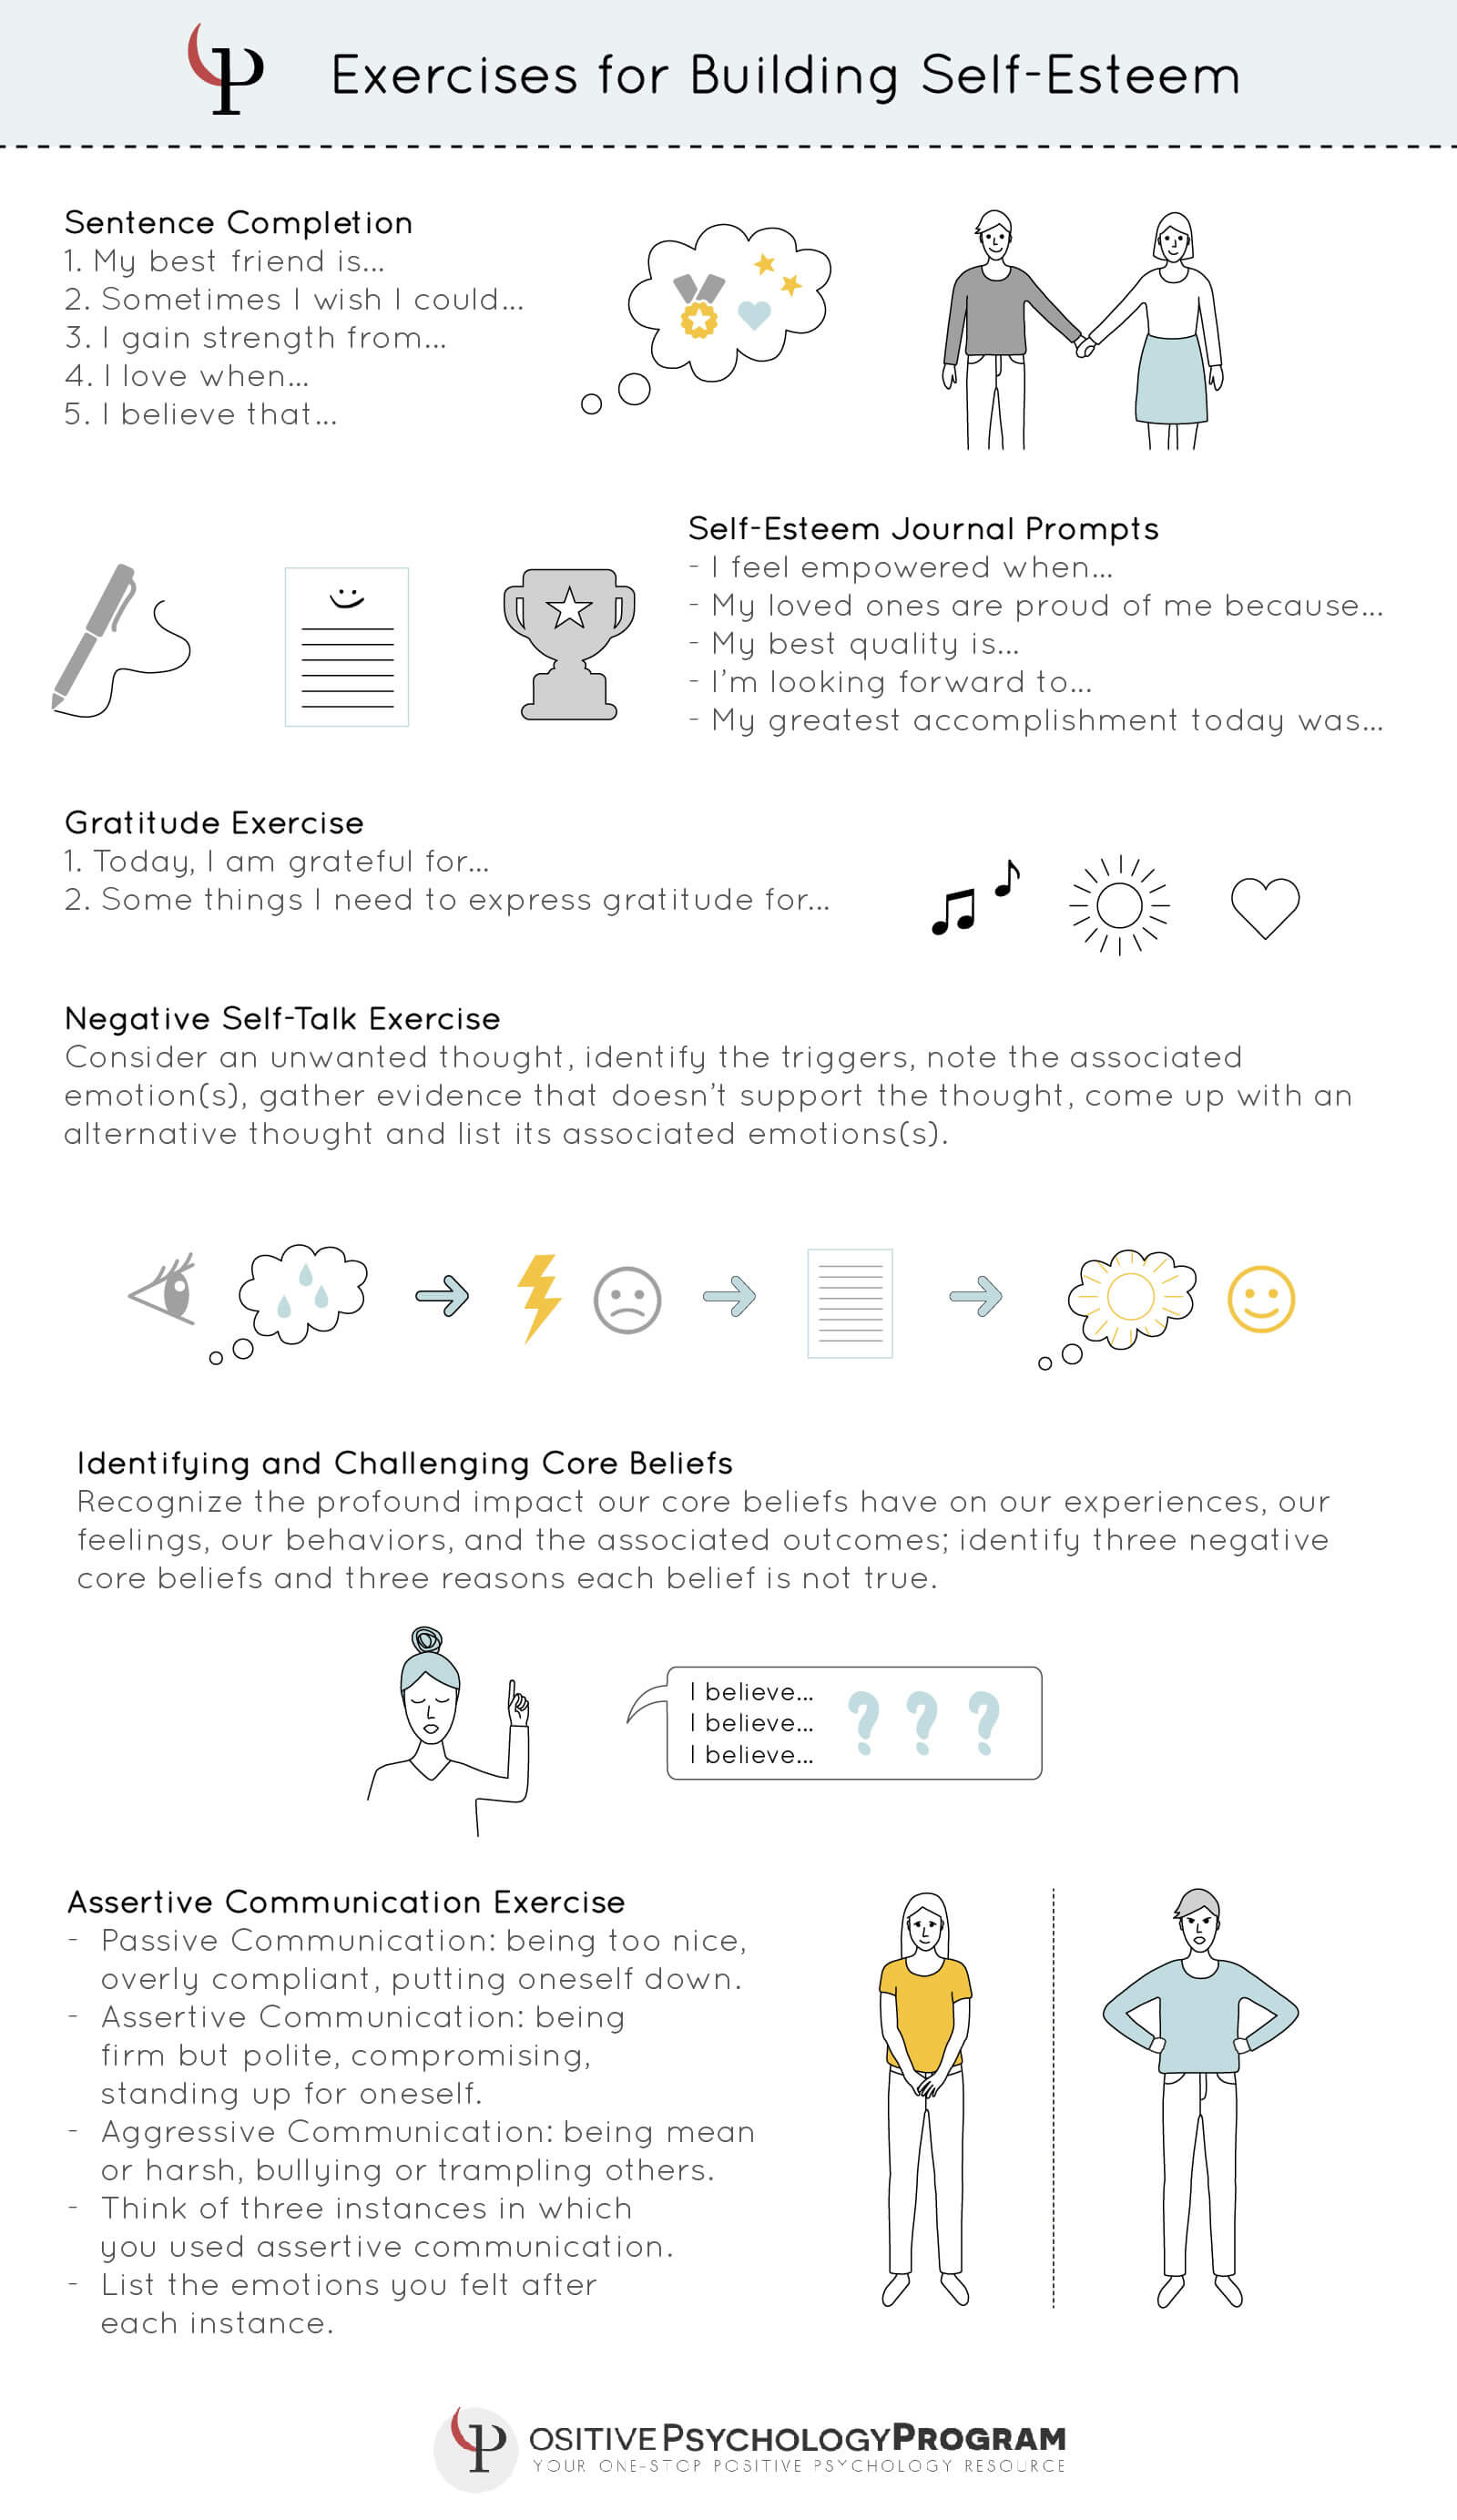 exercises for building self-esteem infographic